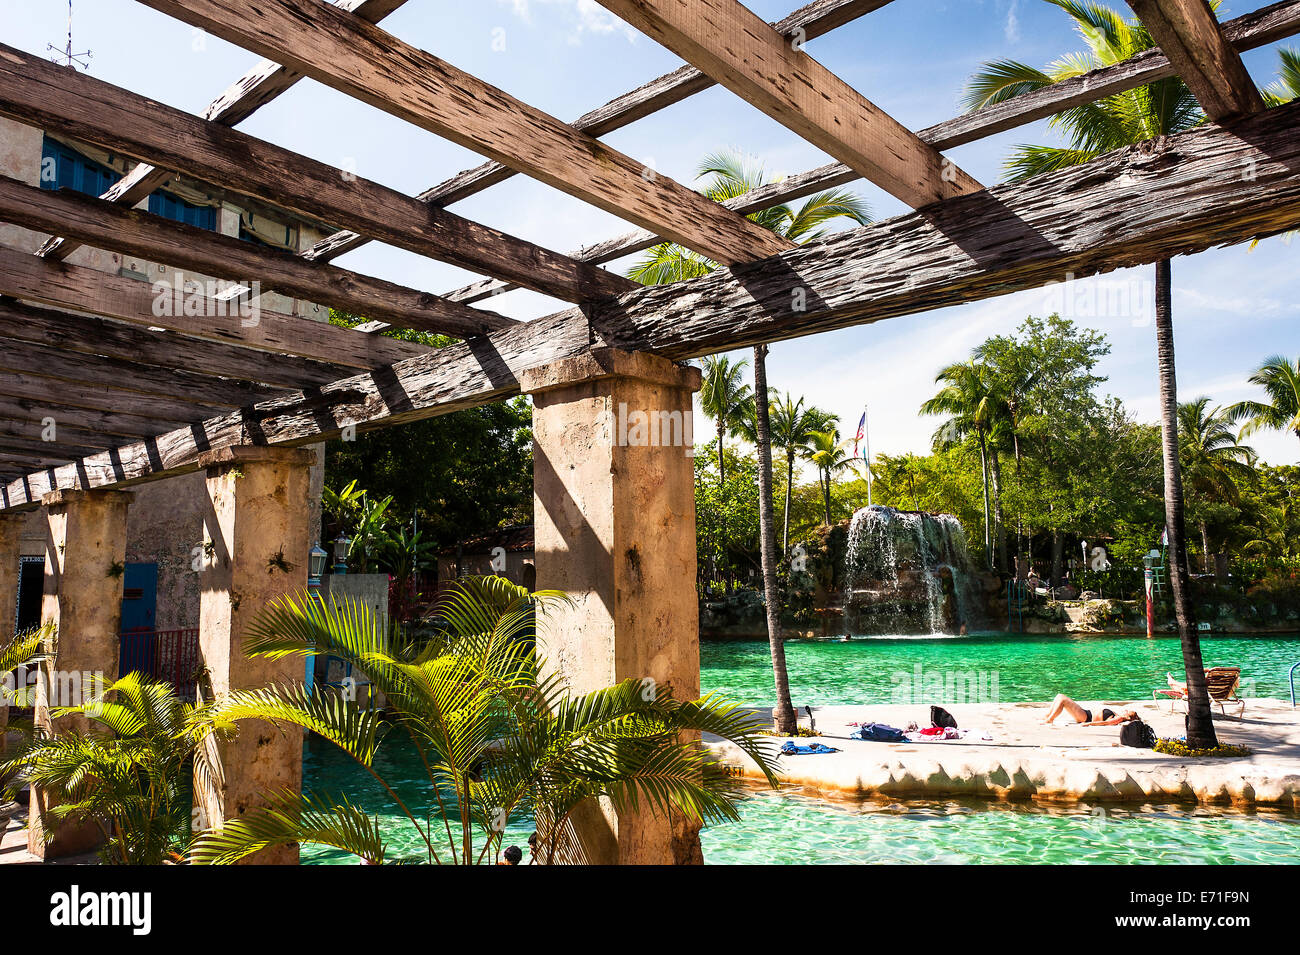 Venetian Pool Coral Gables - Stock Image